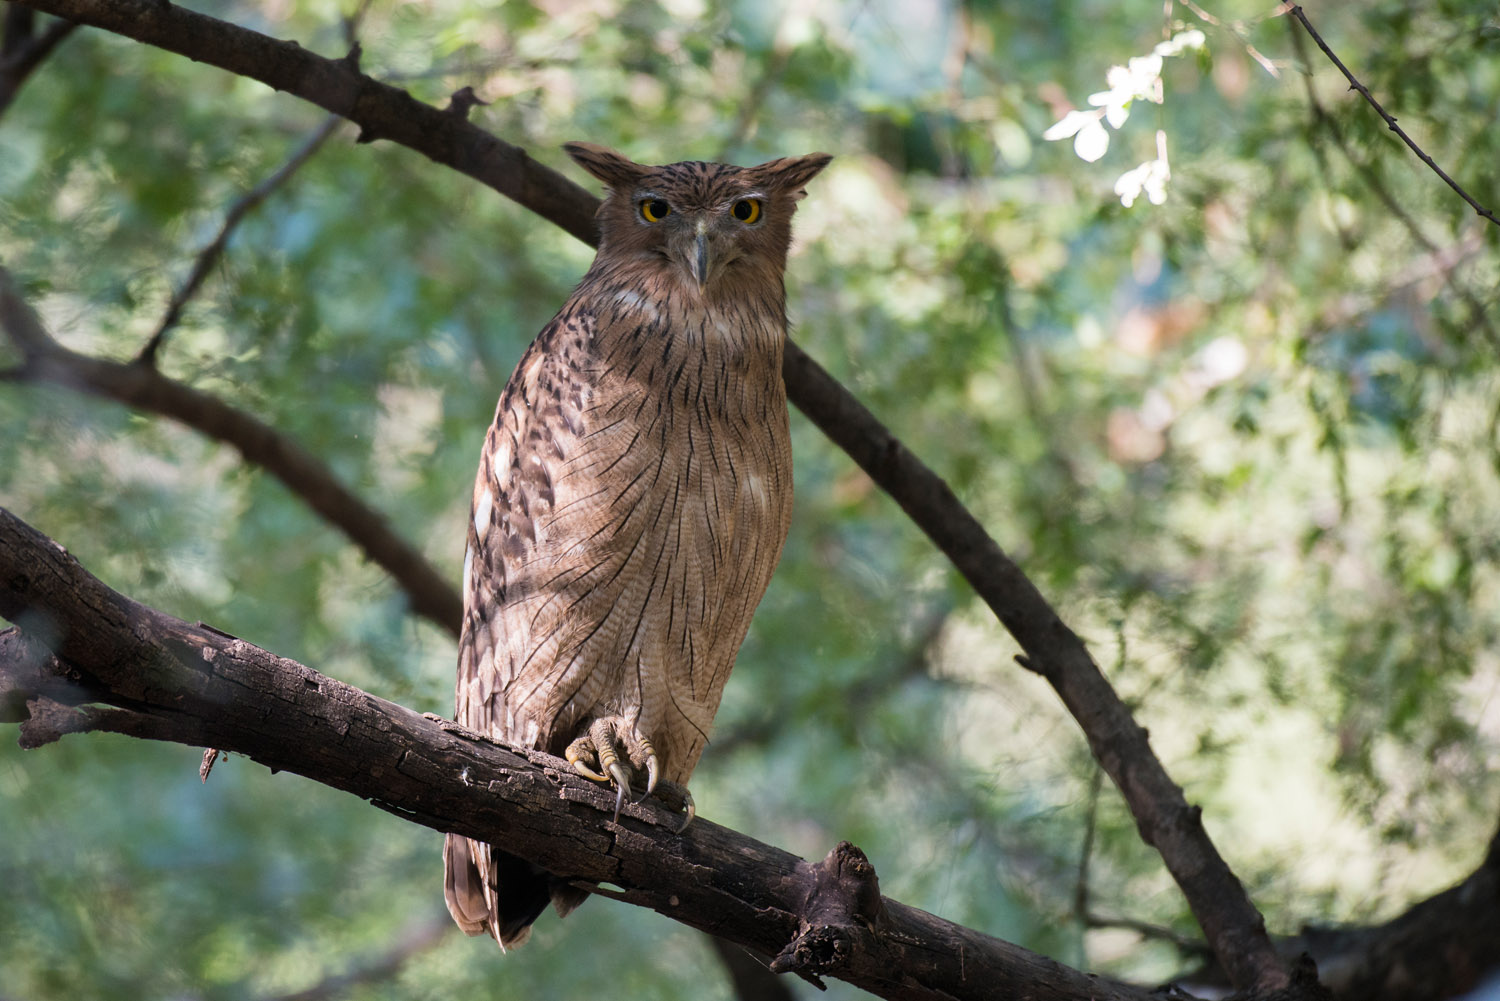 Brown fish-owl, Ranthambhore National Park, Rajasthan, India